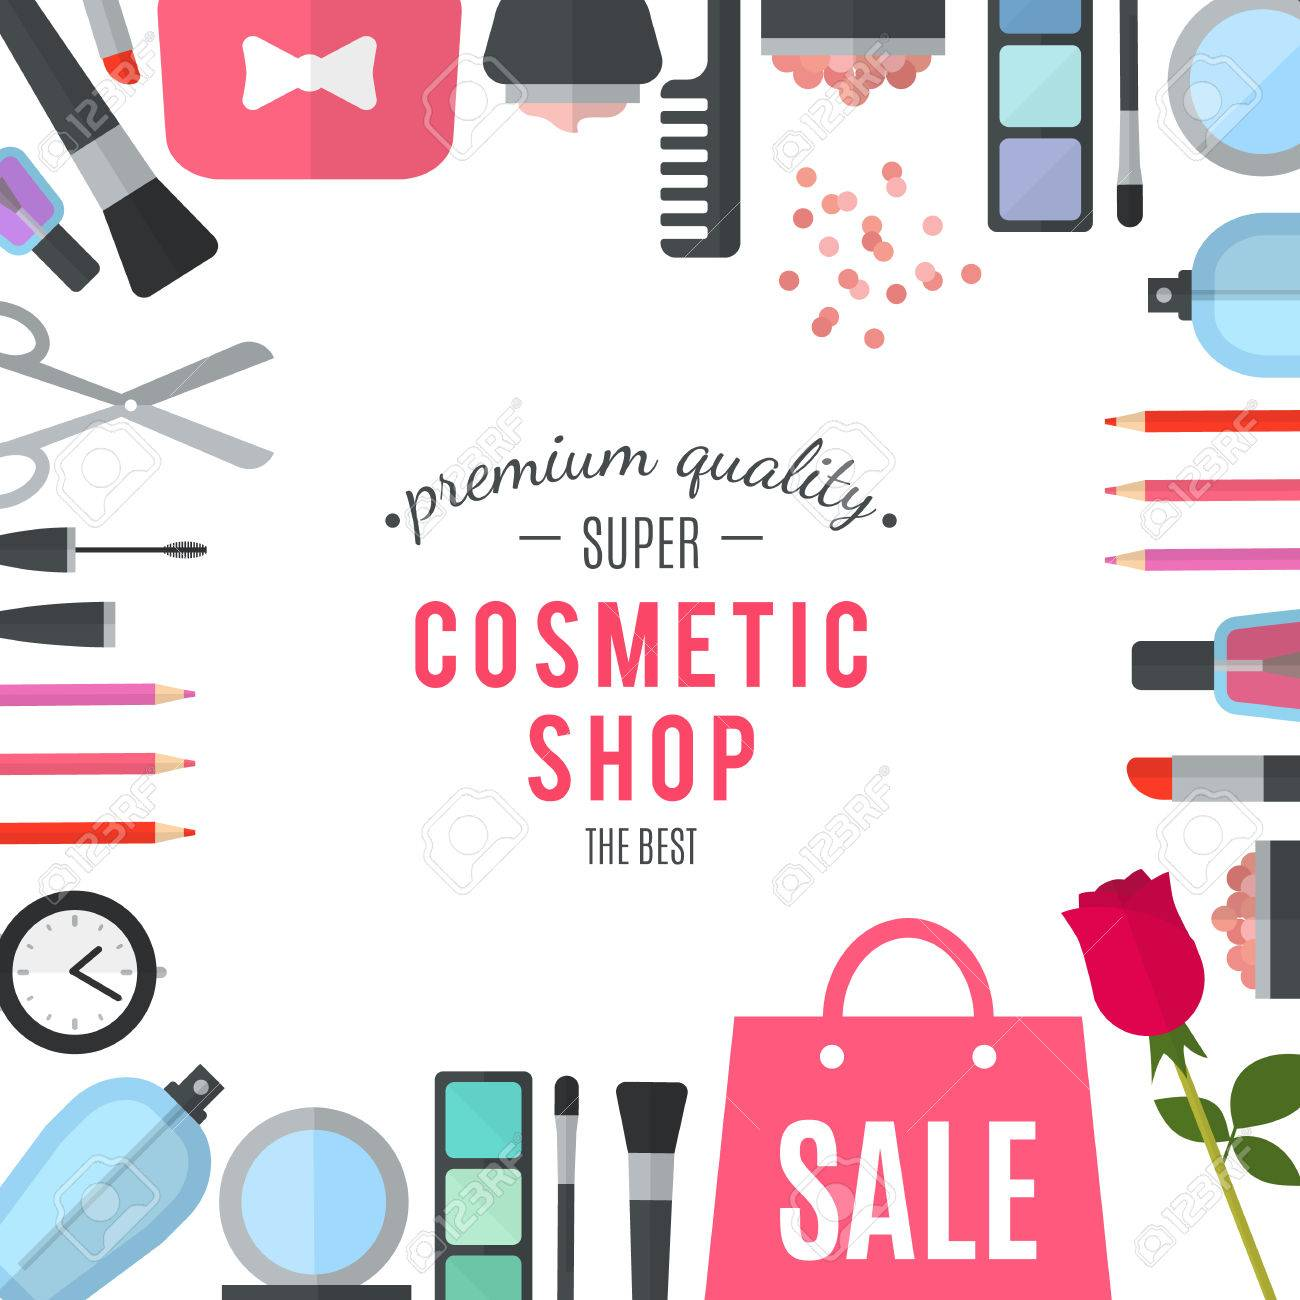 0bf7663c96 Illustration - Professional quality cosmetics shop. Woman mobile online  shopping. Accessories and cosmetics. Purchases in beautiful wrapped boxes.